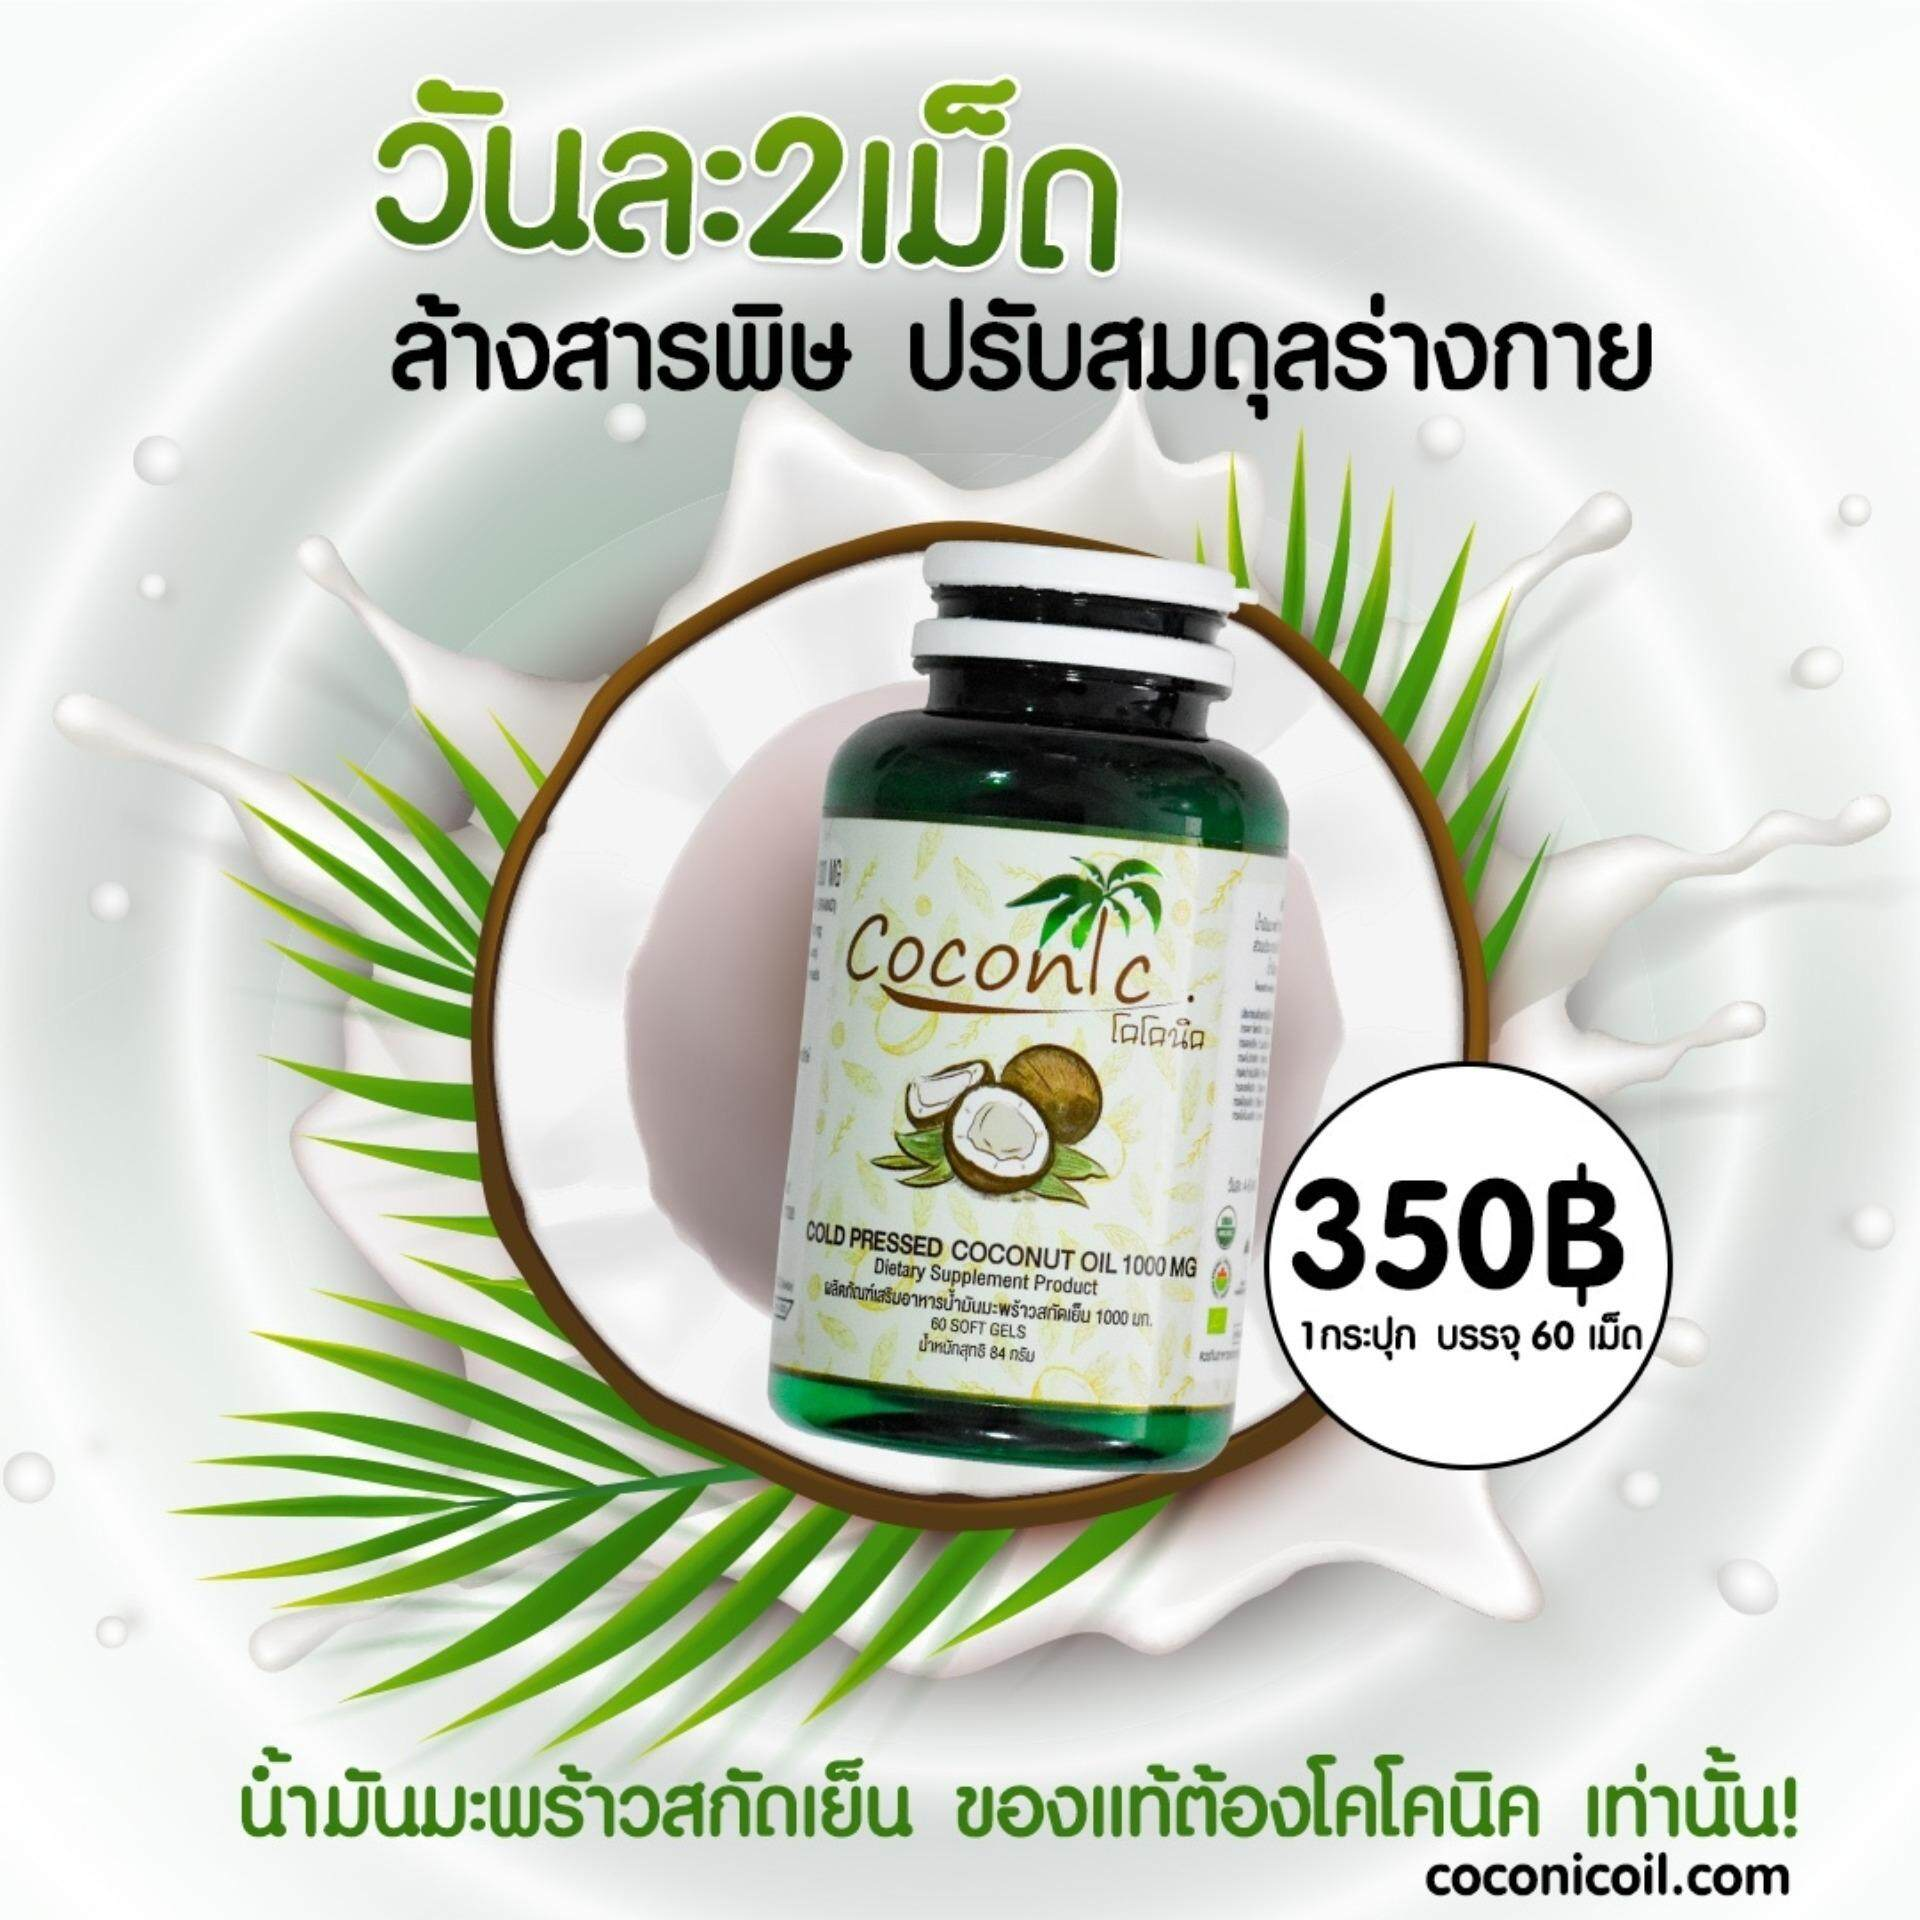 Coconic (น้ำมันมะพร้าวสกัดเย็น 100%) By Coconic Coconic.